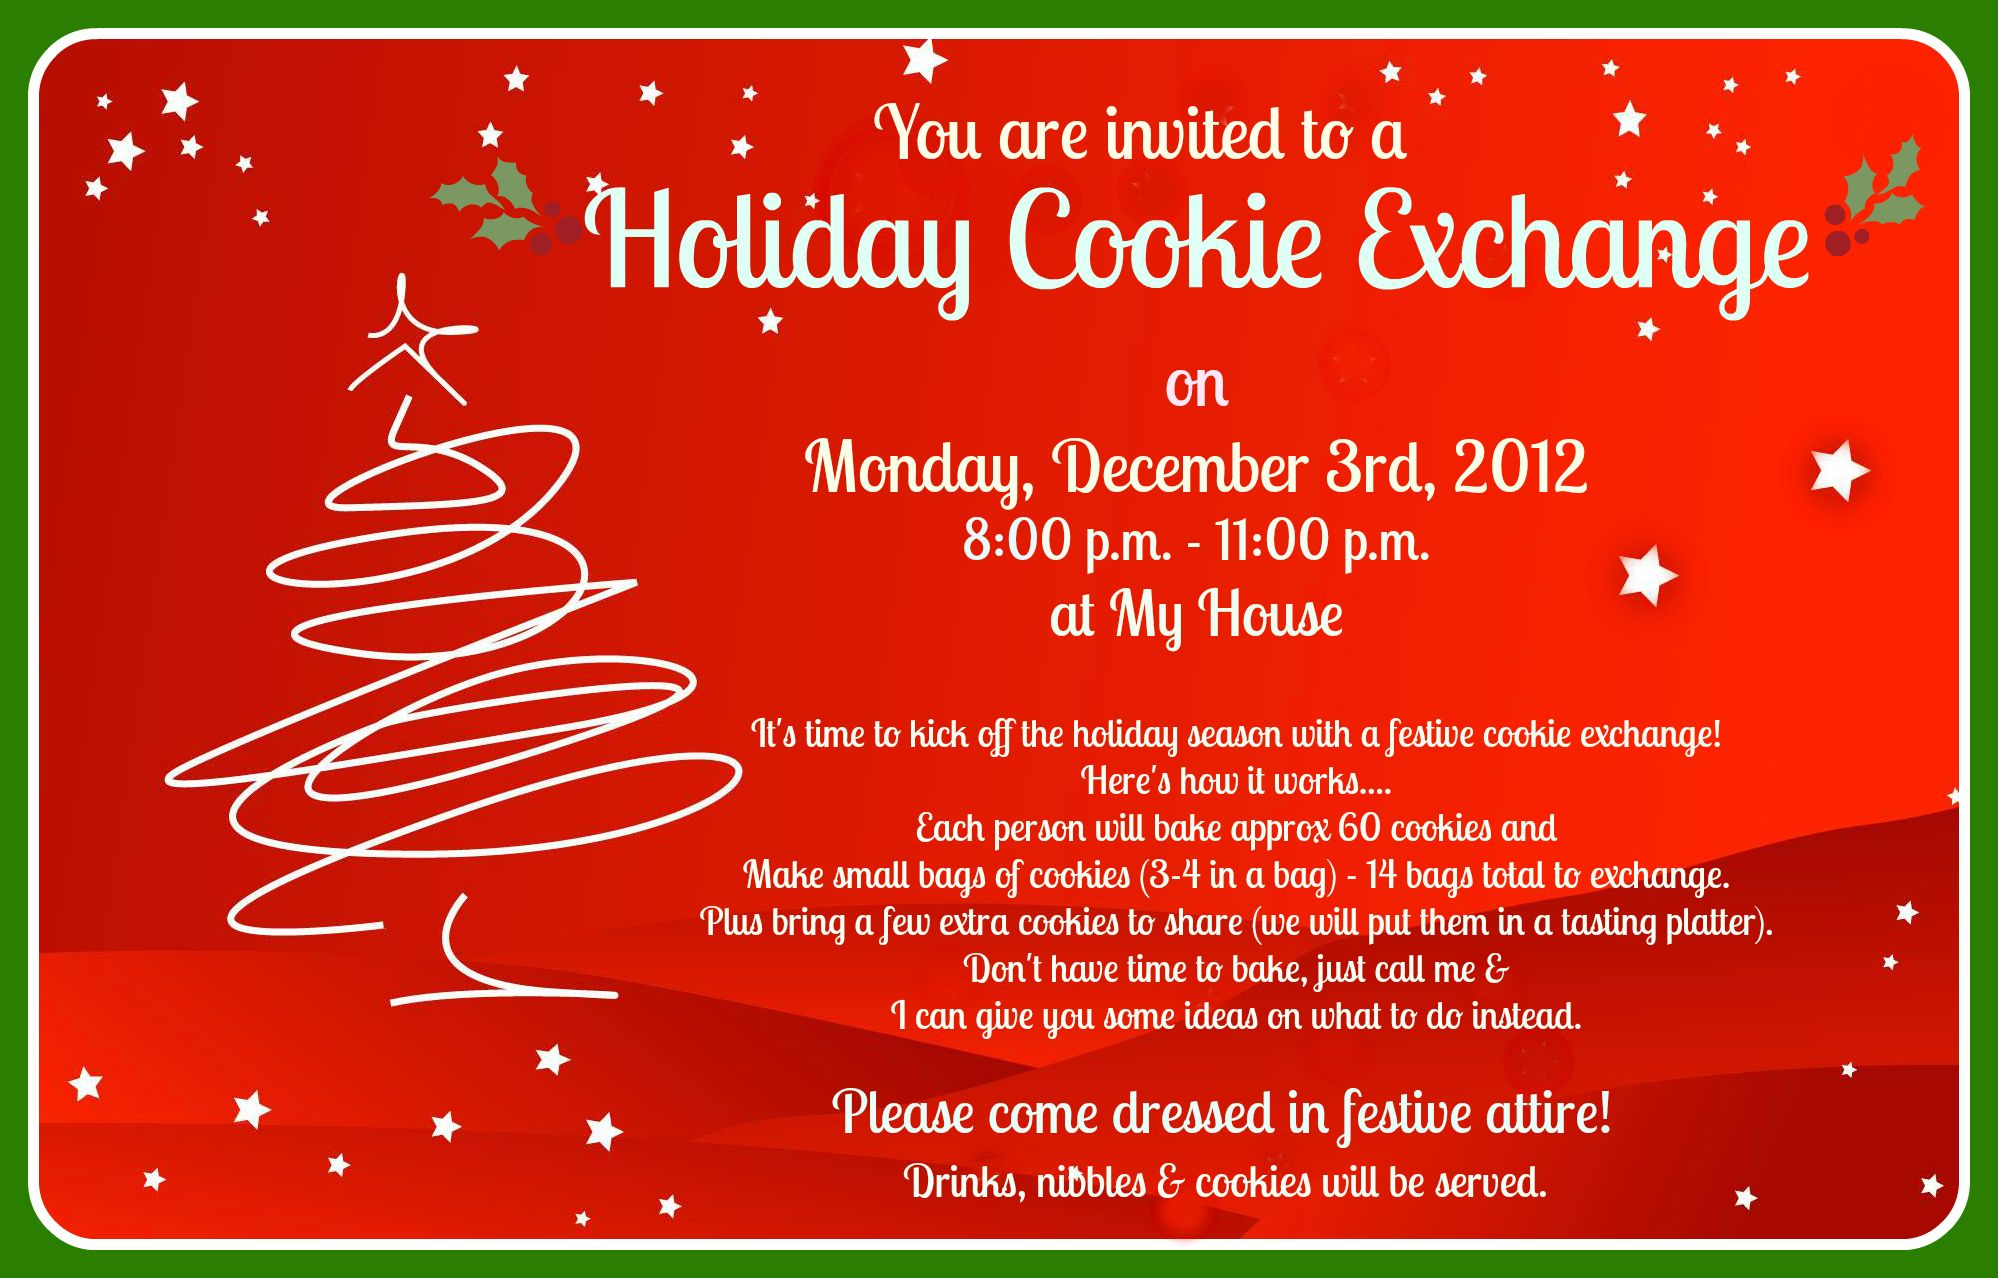 Christmas cookie exchange party rules | Cookie Exchange/Holiday ...